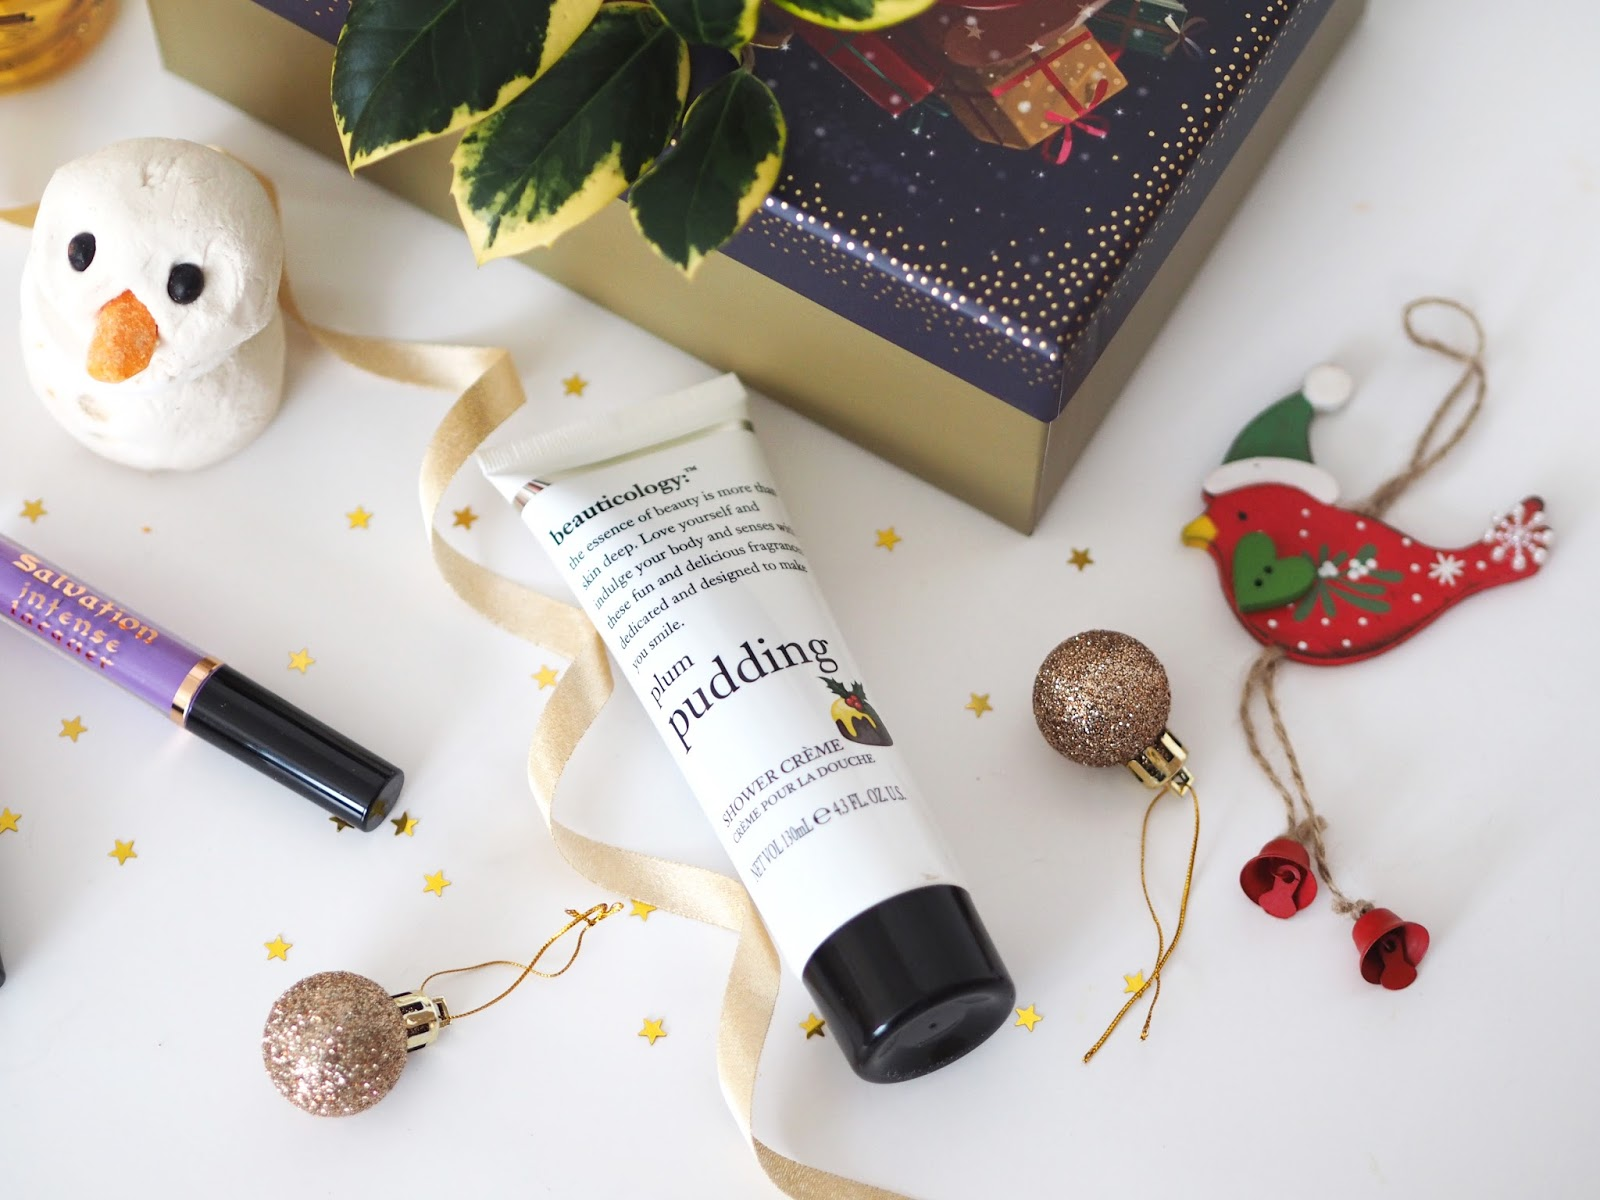 Christmas Giveaway. Katie Kirk Loves, UK Blogger, Fashion Blogger, Beauty Blogger, Giveaway, Prize, Competition, Win This, Lush Cosmetics, Lush Snowman Bubble Bar, Lush Christmas, Blog Giveaway, Make Up Revolution, Yankee Candle, Beauticology, Beauty Products, Skincare Products